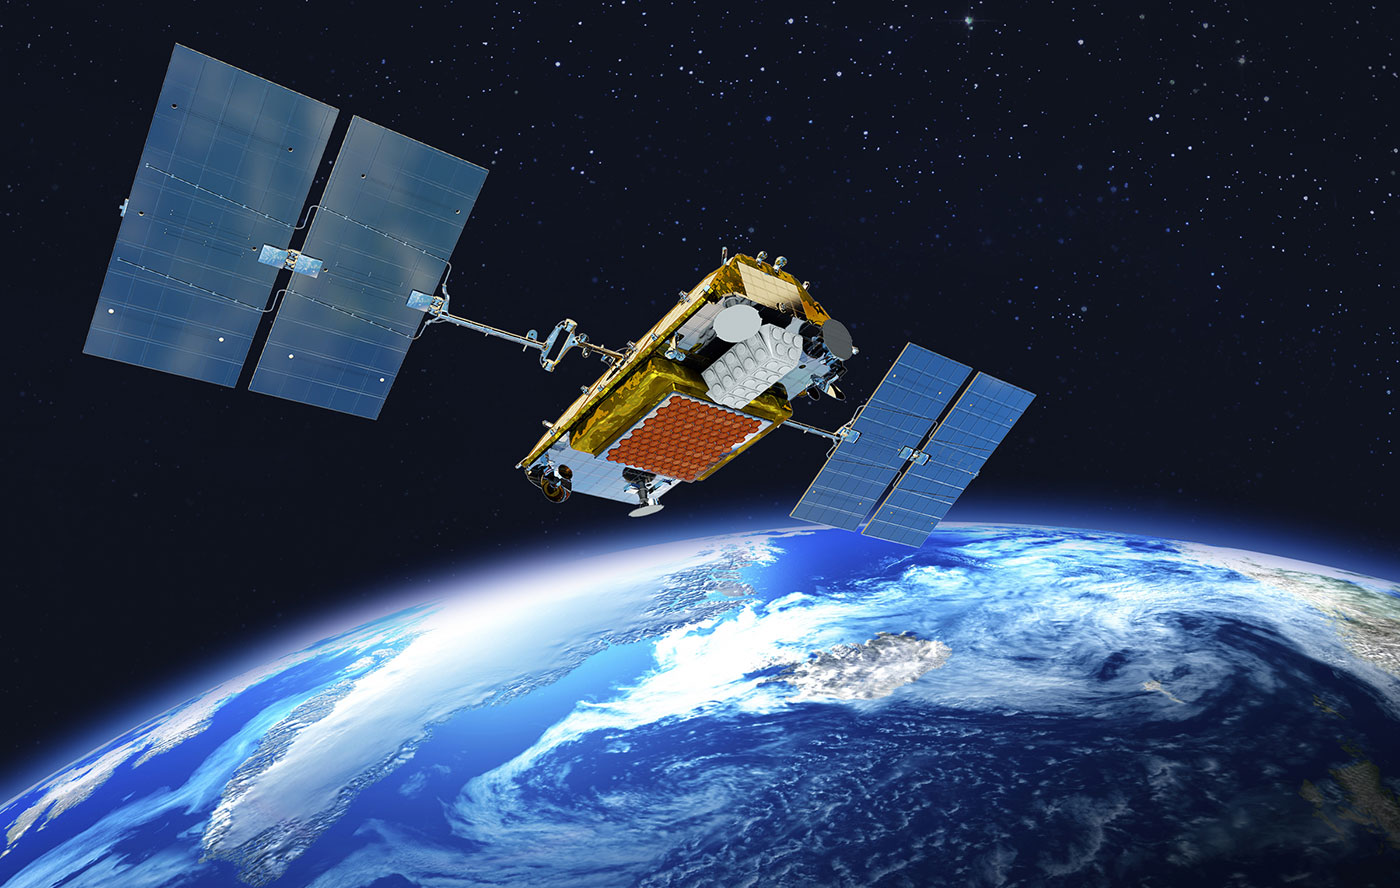 NASA's reconfigurable radio can track planes over oceans